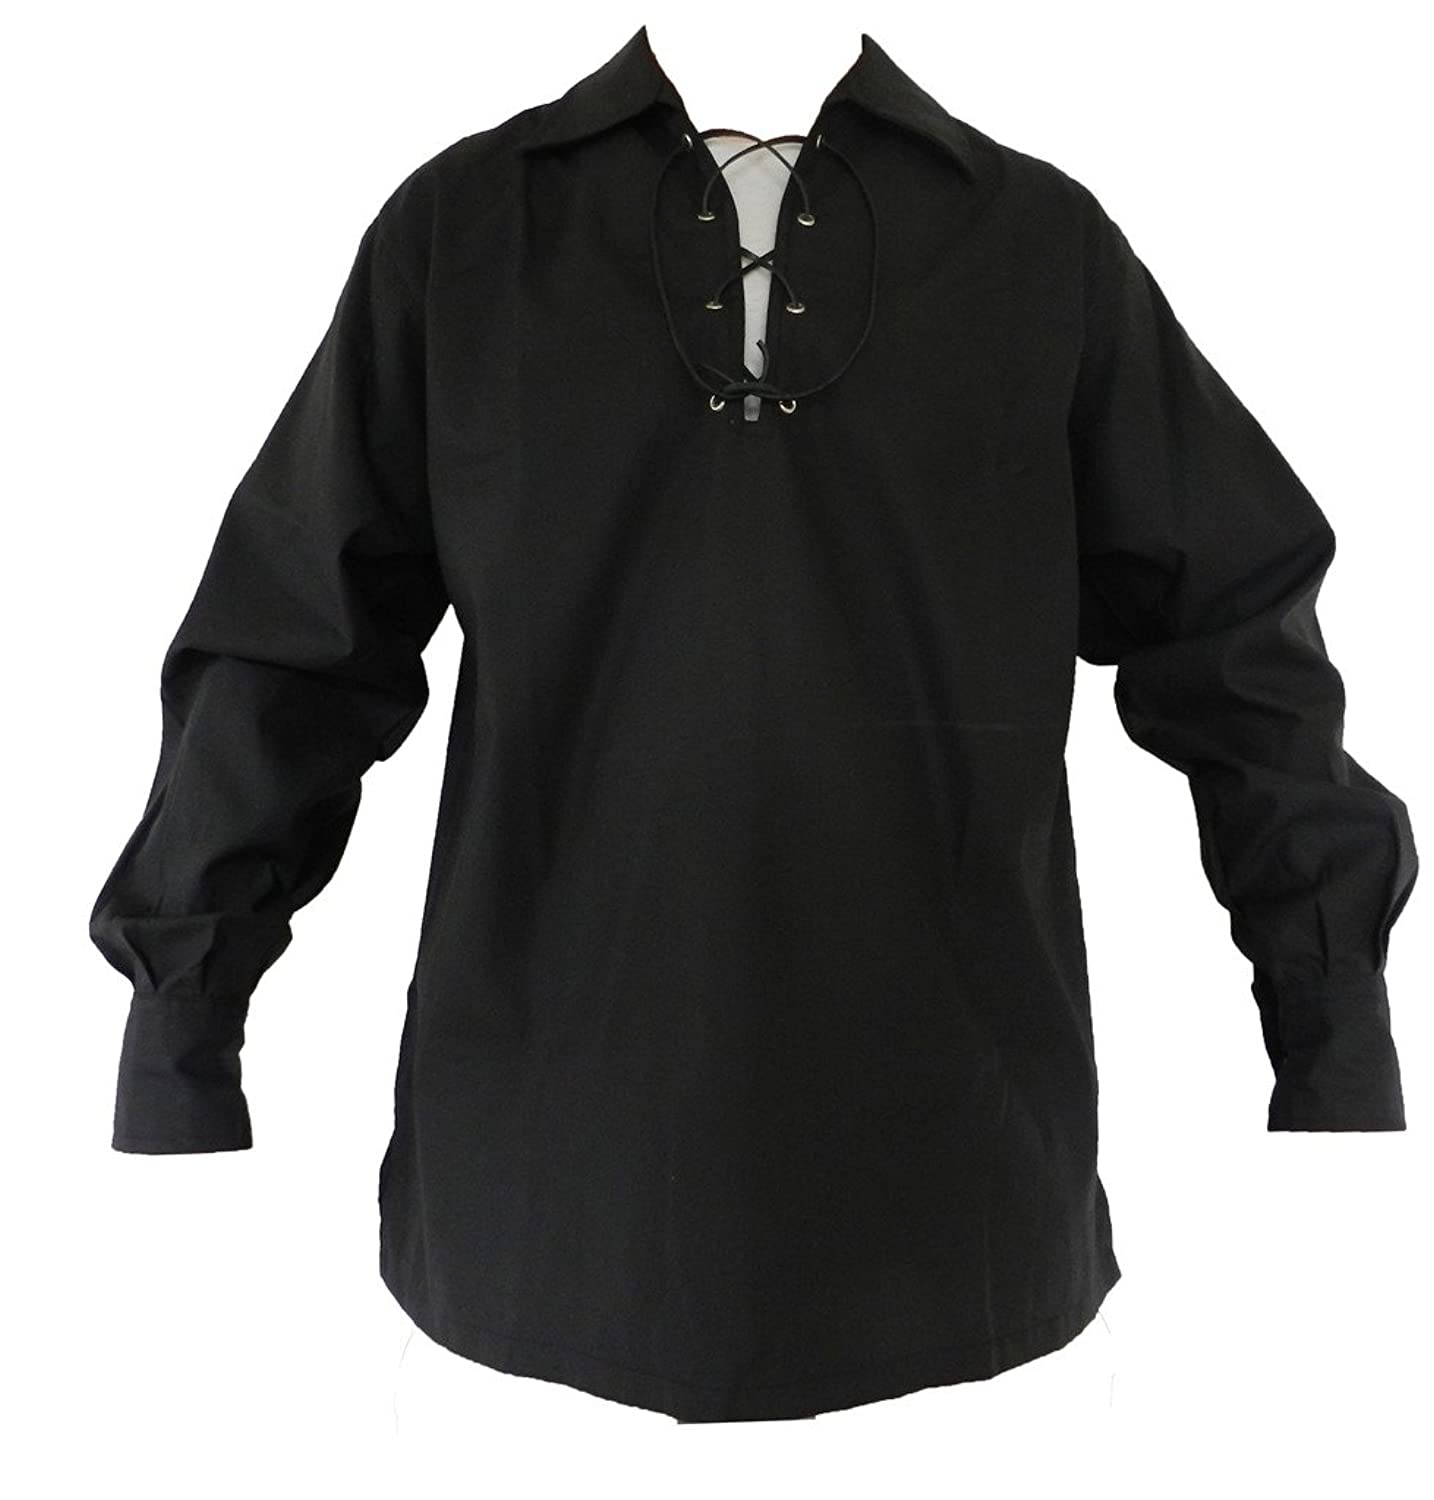 black lace up pirate costume shirt